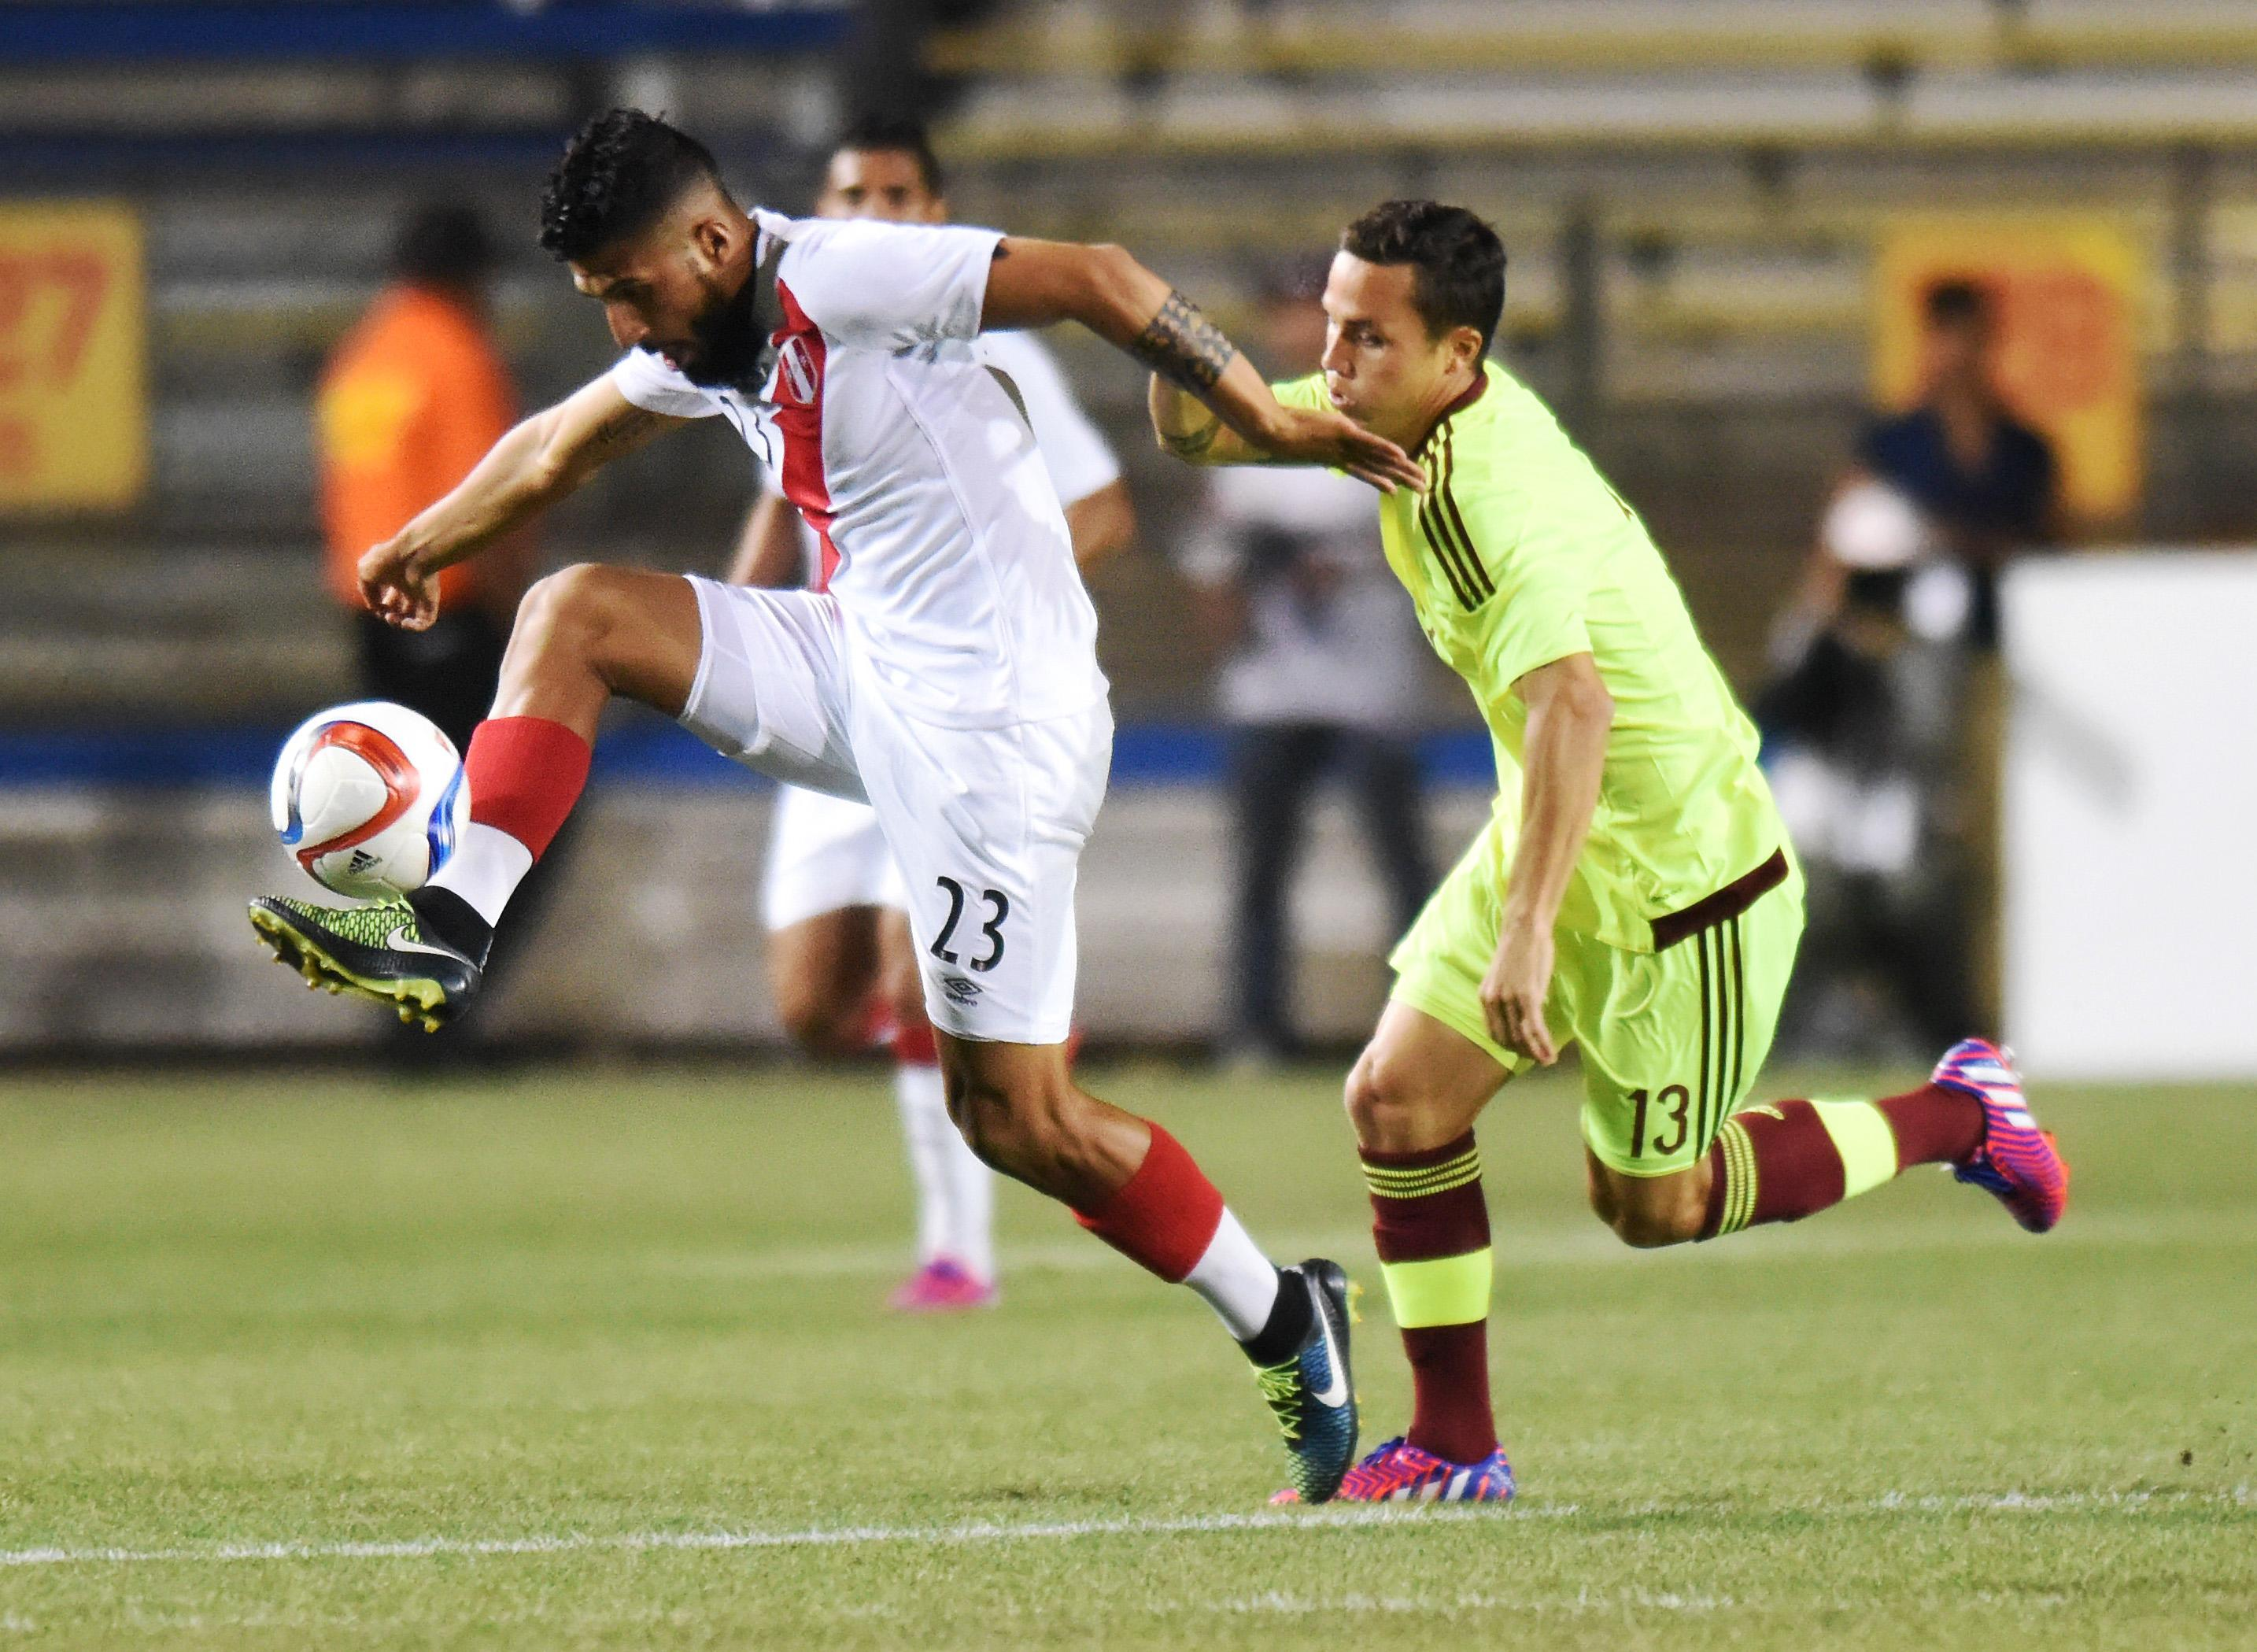 Martinez's goal in 2nd half lifts Venezuela past Peru